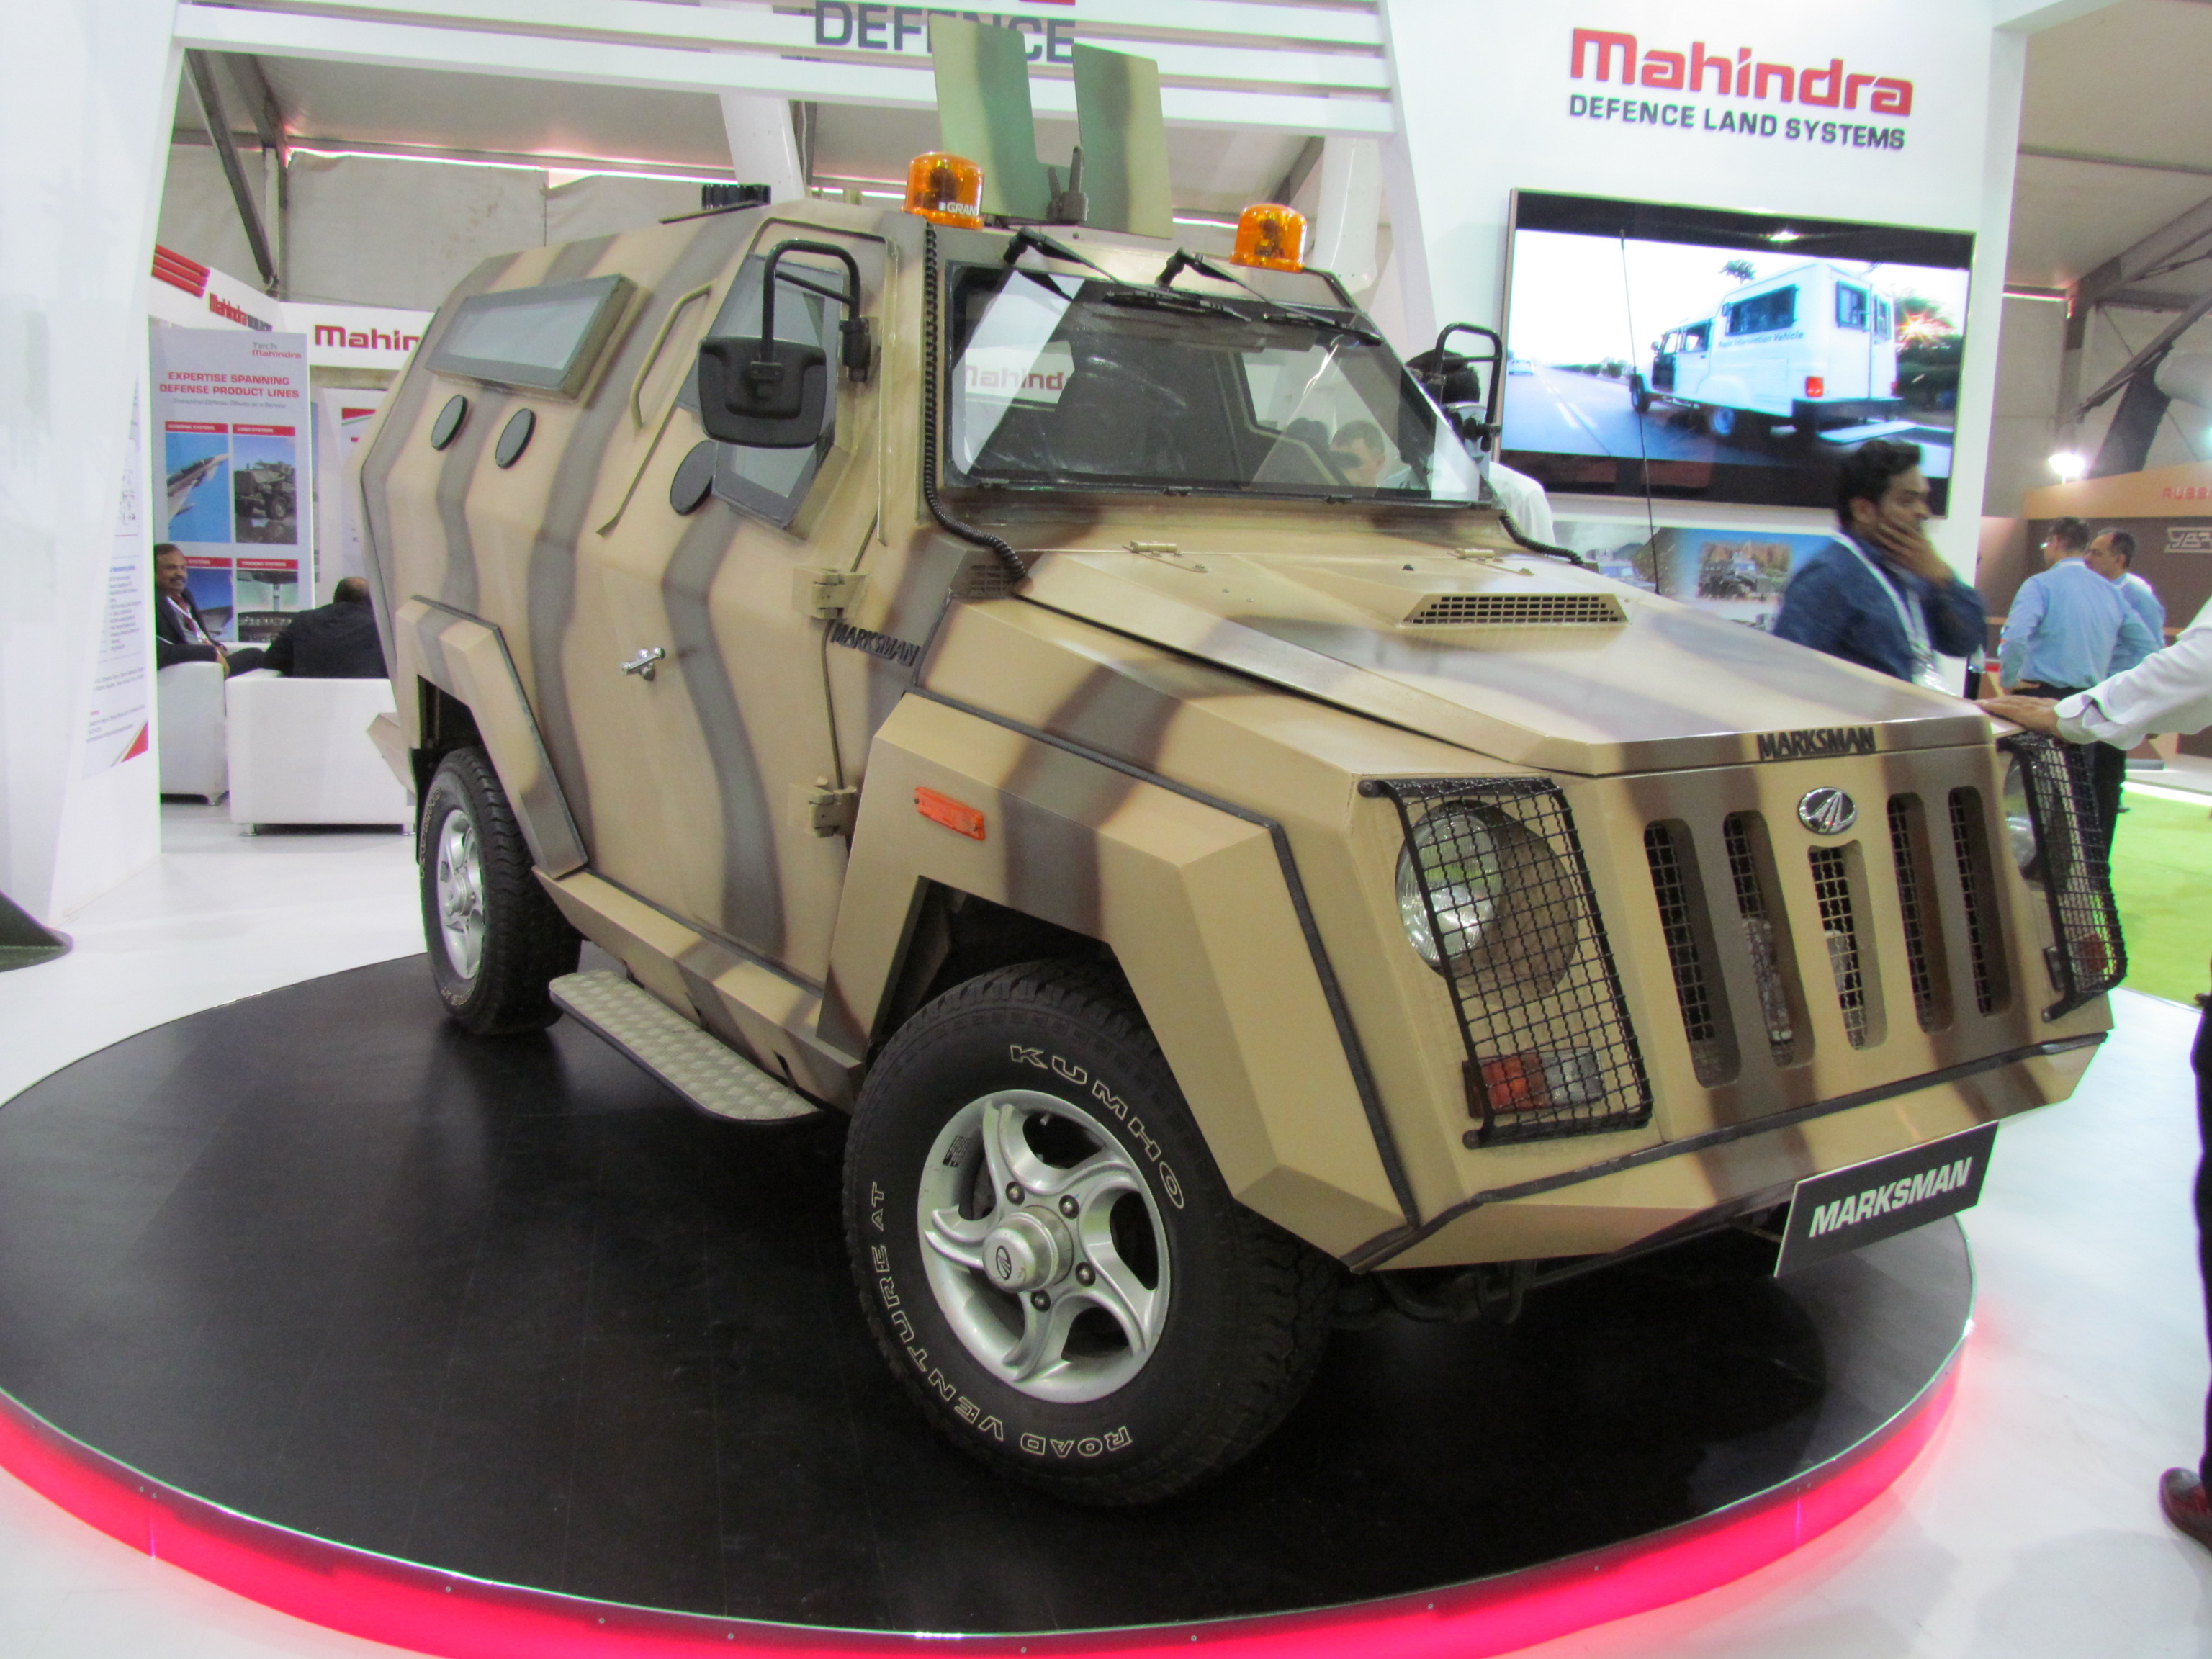 Mahindra's_Marksman_Armoured_Vehicle.02